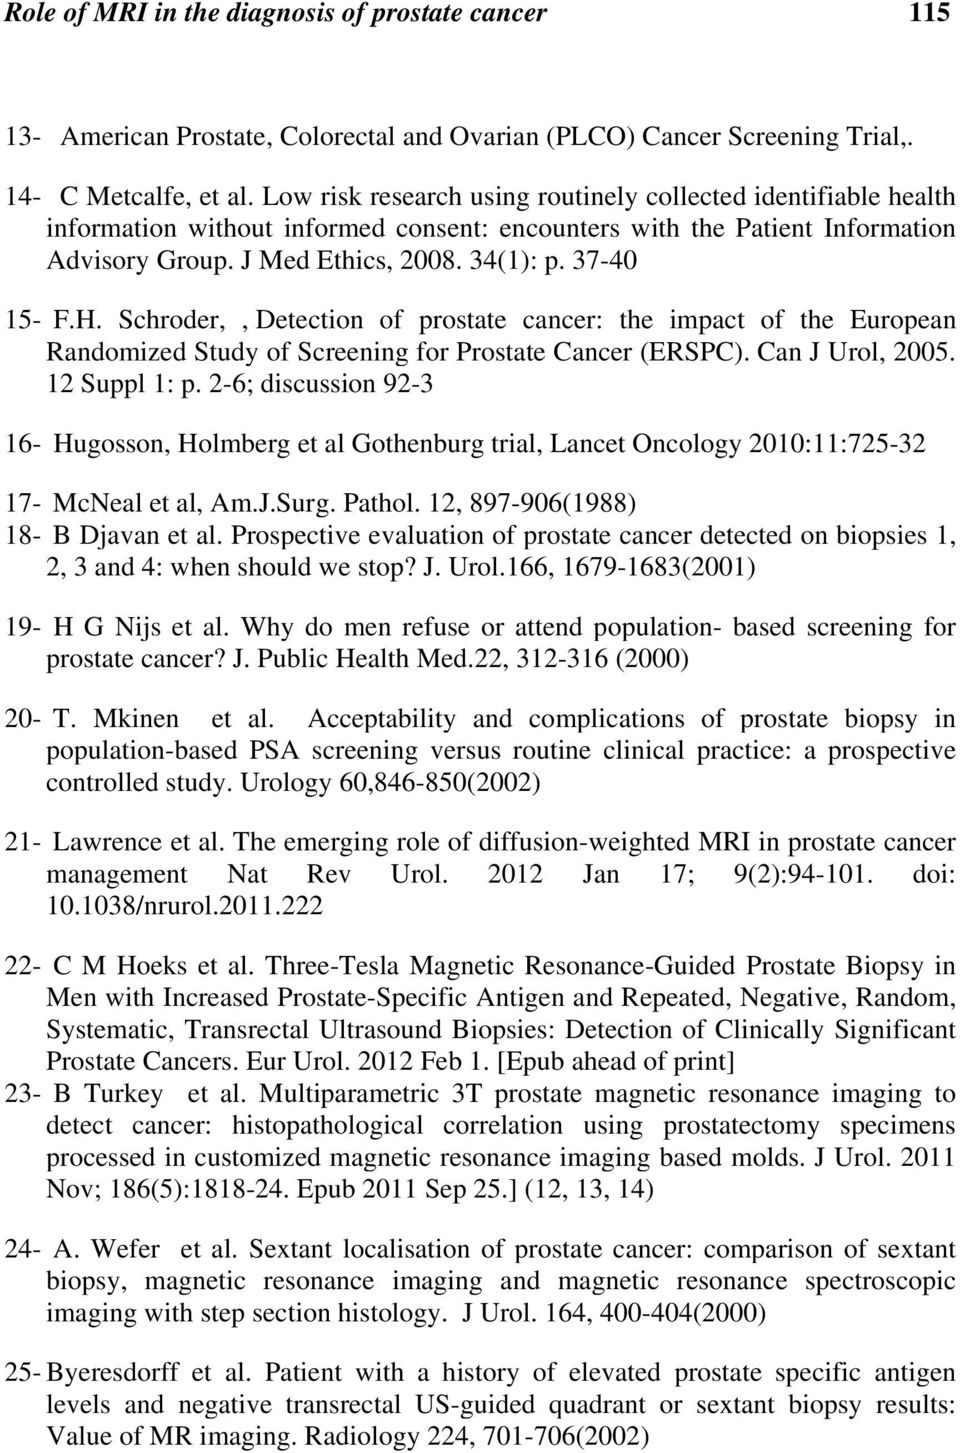 Role of MRI in the Diagnosis of Prostate Cancer, A Proposal